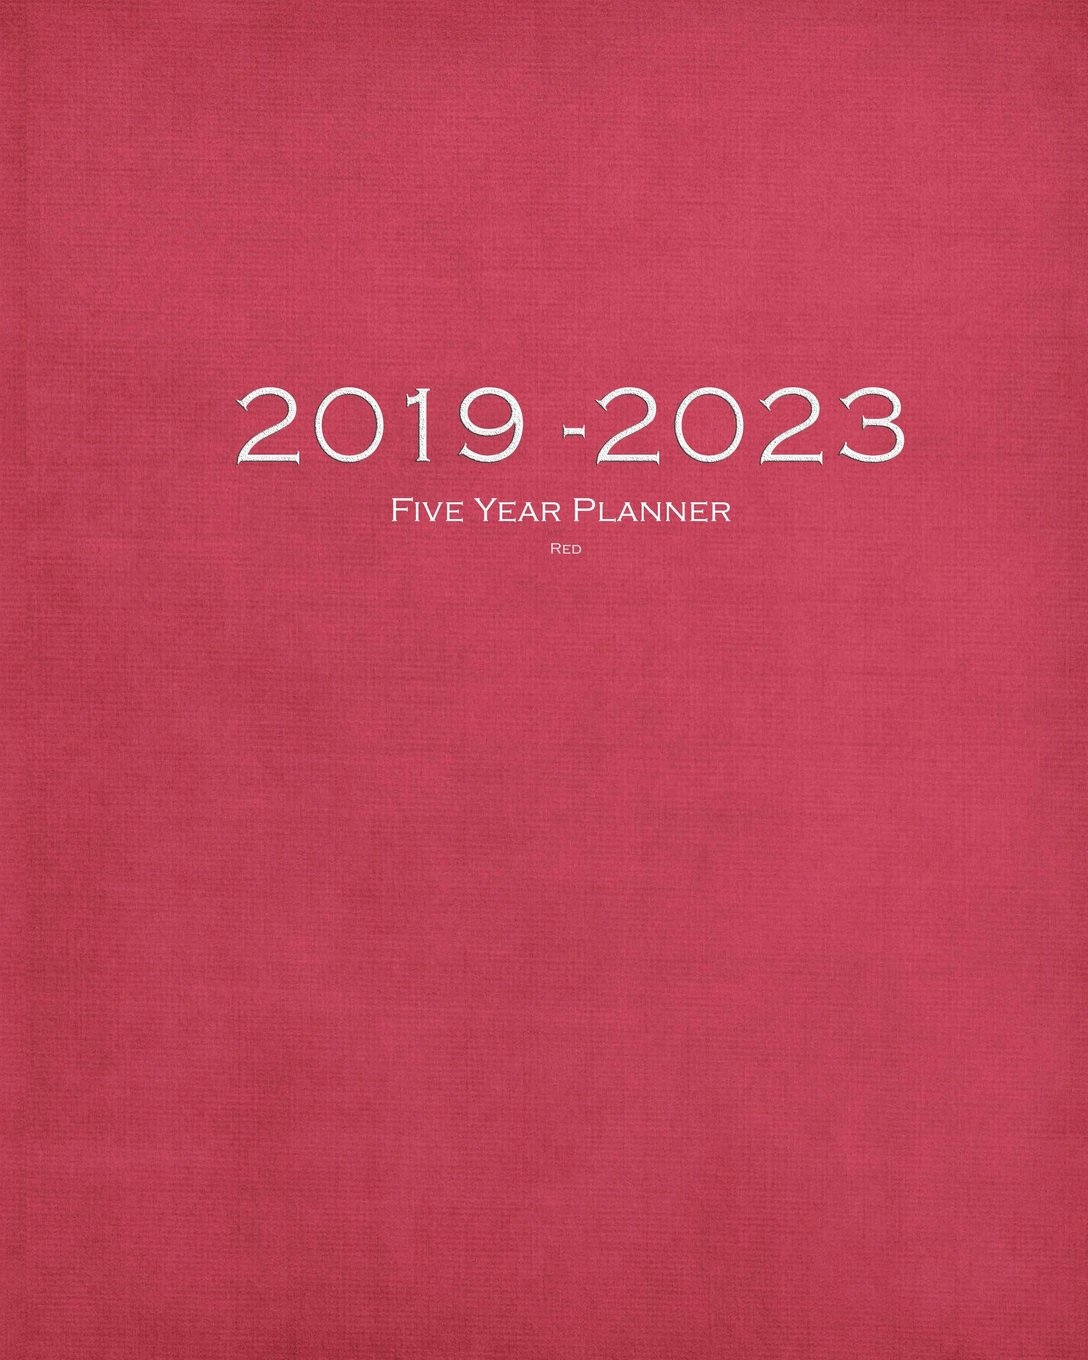 Download 2019-2023 Red Five Year Planner: 60 Months Planner and Calendar,Monthly Calendar Planner, Agenda Planner and Schedule Organizer, Journal Planner and ... years (5 year calendar/5 year diary/8 x 10) ebook